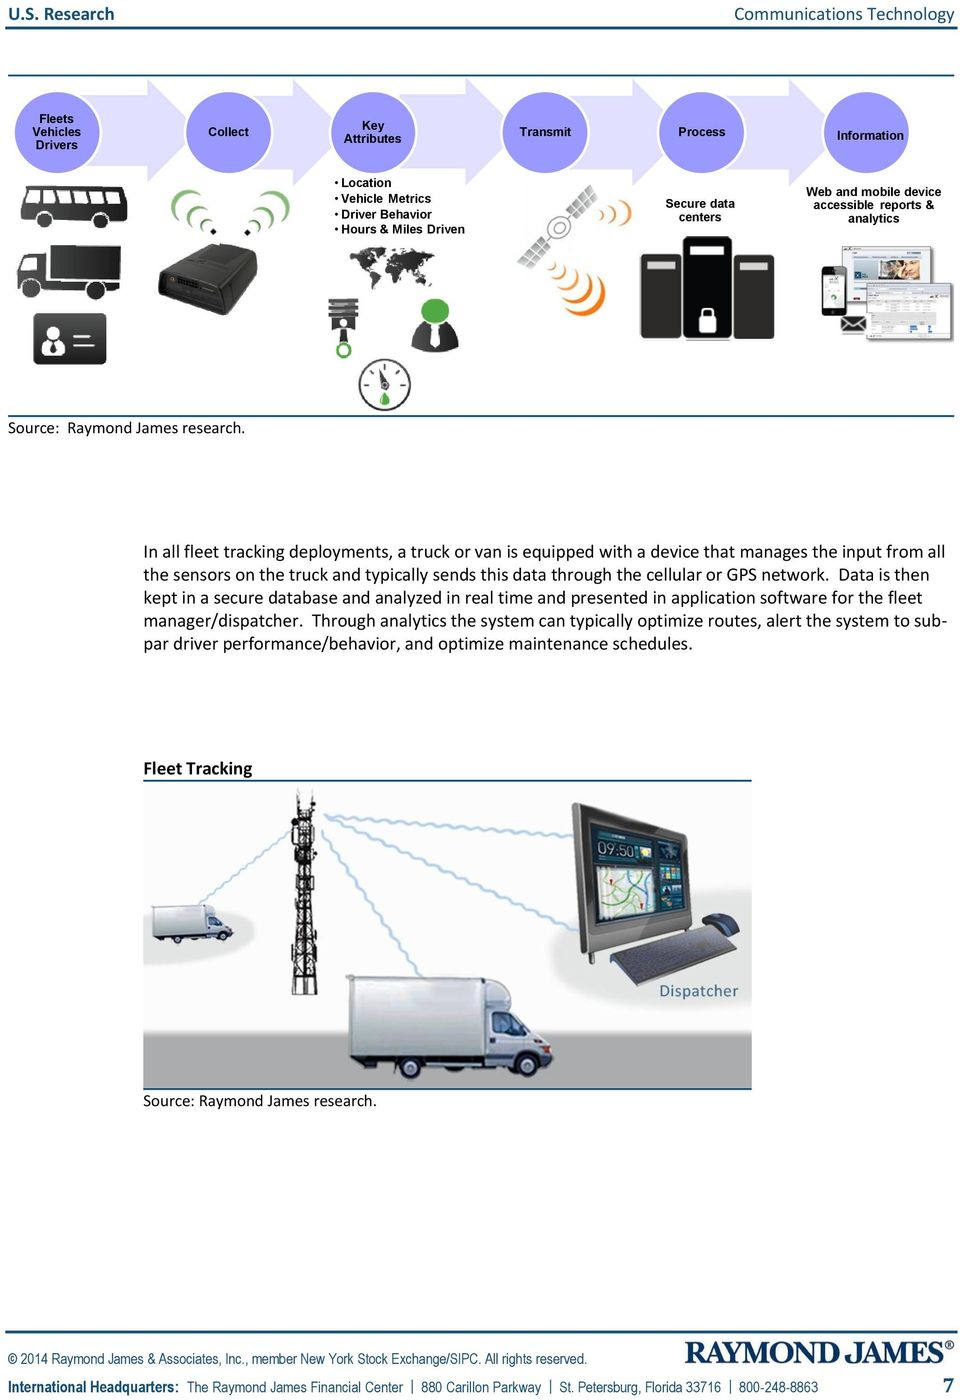 In all fleet tracking deployments, a truck or van is equipped with a device that manages the input from all the sensors on the truck and typically sends this data through the cellular or GPS network.